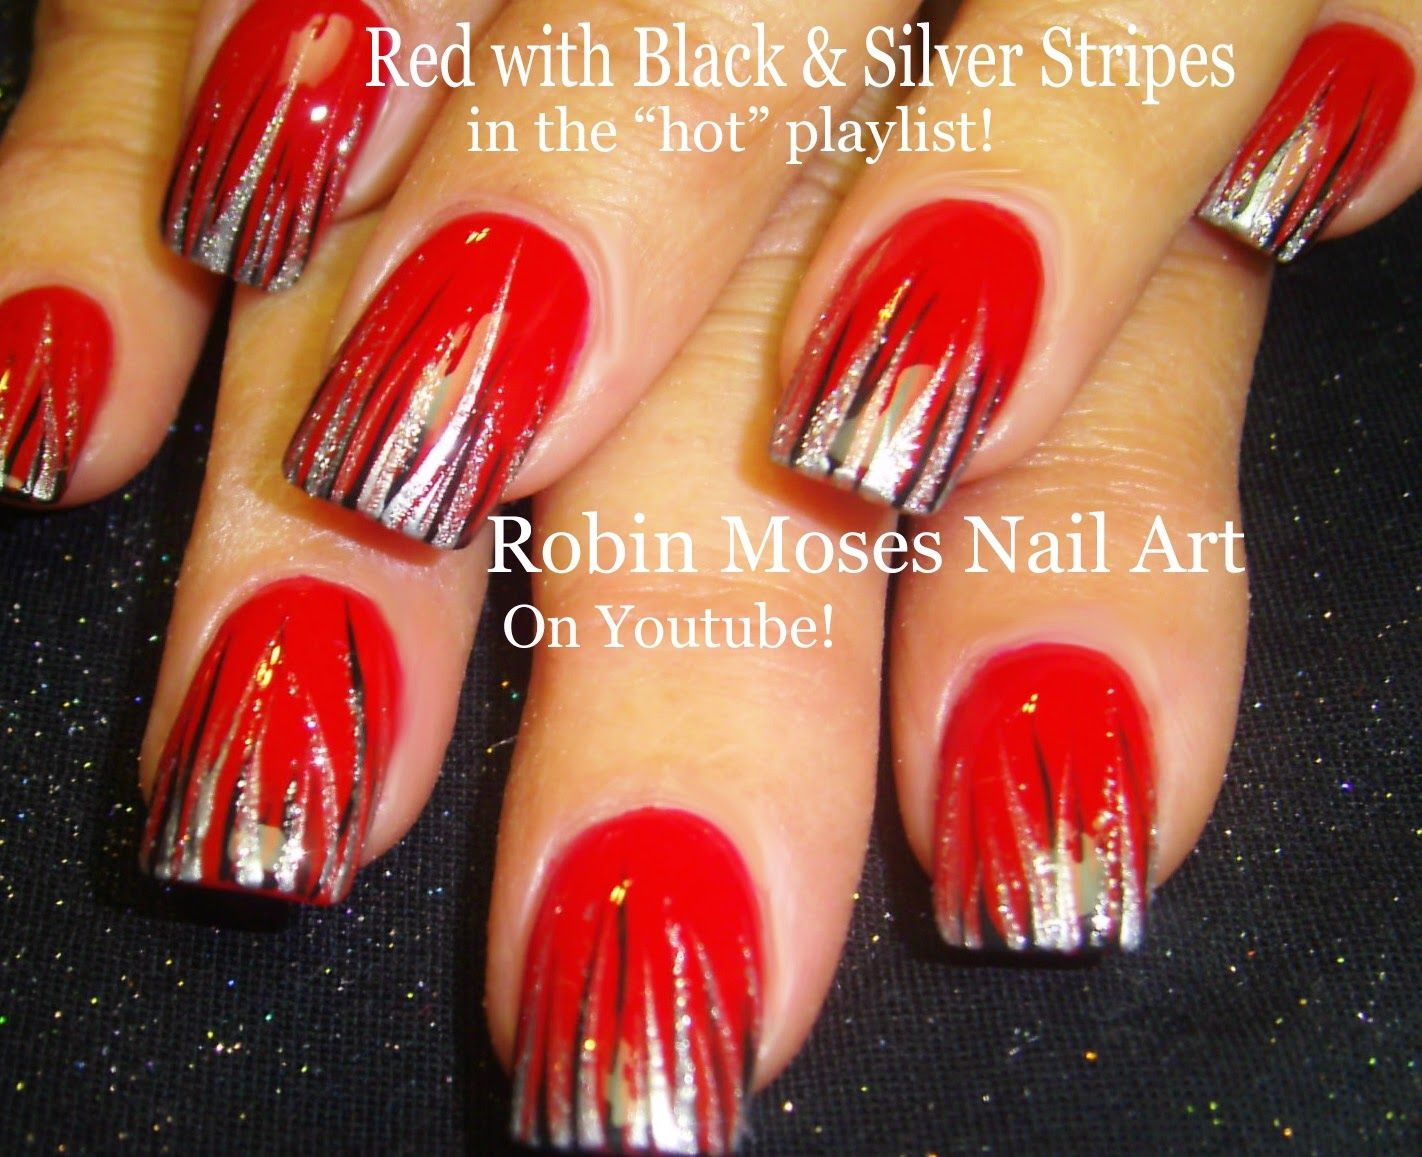 Robin moses nail art nye nails new years eve nails hot nails robin moses nail art nye nails new years eve nails solutioingenieria Choice Image